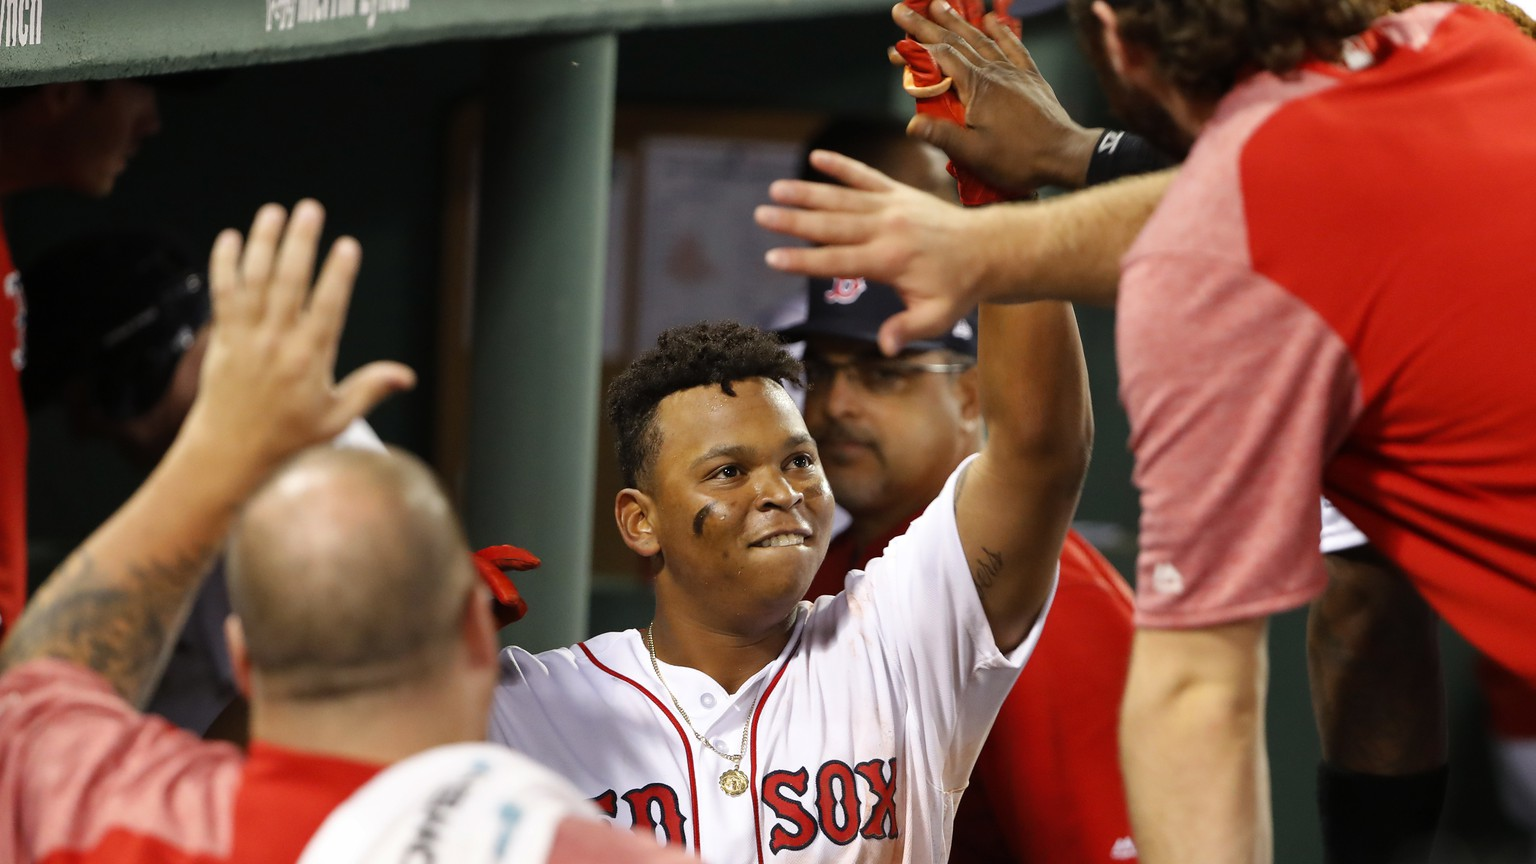 Boston Red Sox's Rafael Devers is congratulated in the dugout after his home run against the New York Yankees during the seventh inning of a baseball game at Fenway Park in Boston on Saturday, Aug. 19, 2017. (AP Photo/Winslow Townson)